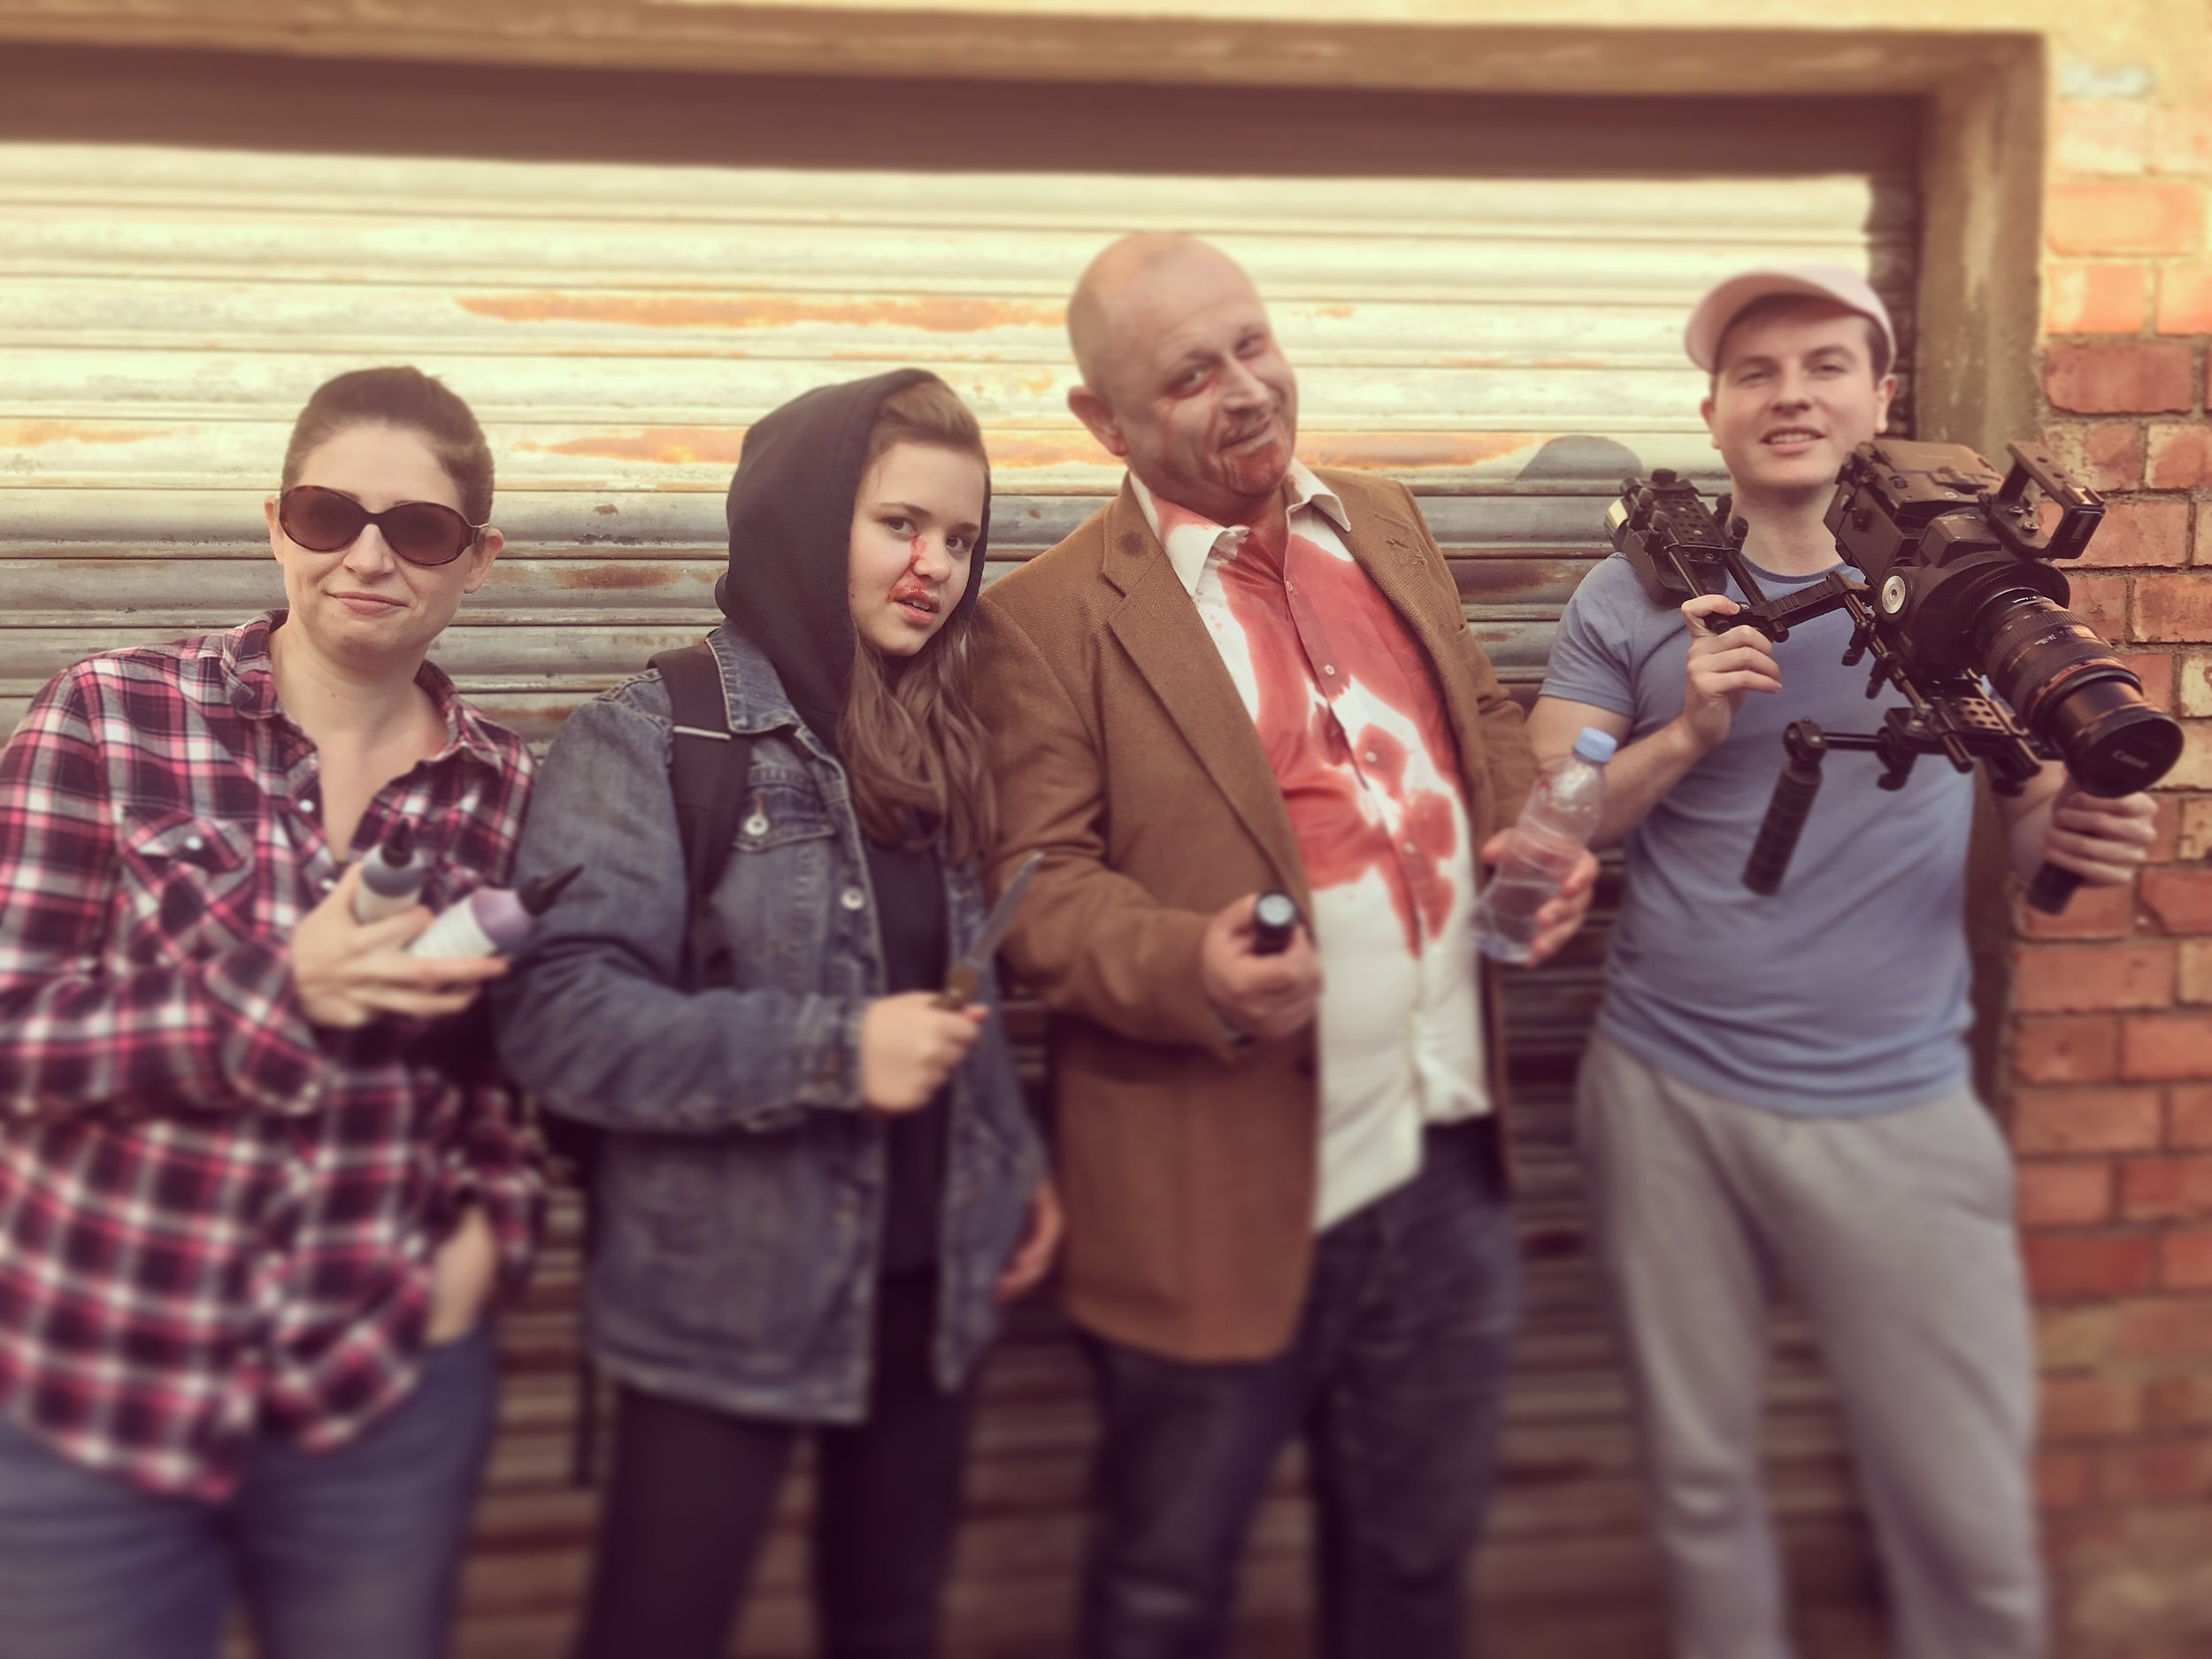 Unusual Suspects- Penny Layton (MUA), Tiana Rogers (Runaway), Paul Rogers (Dead guy), and Alex Powell (DoP).